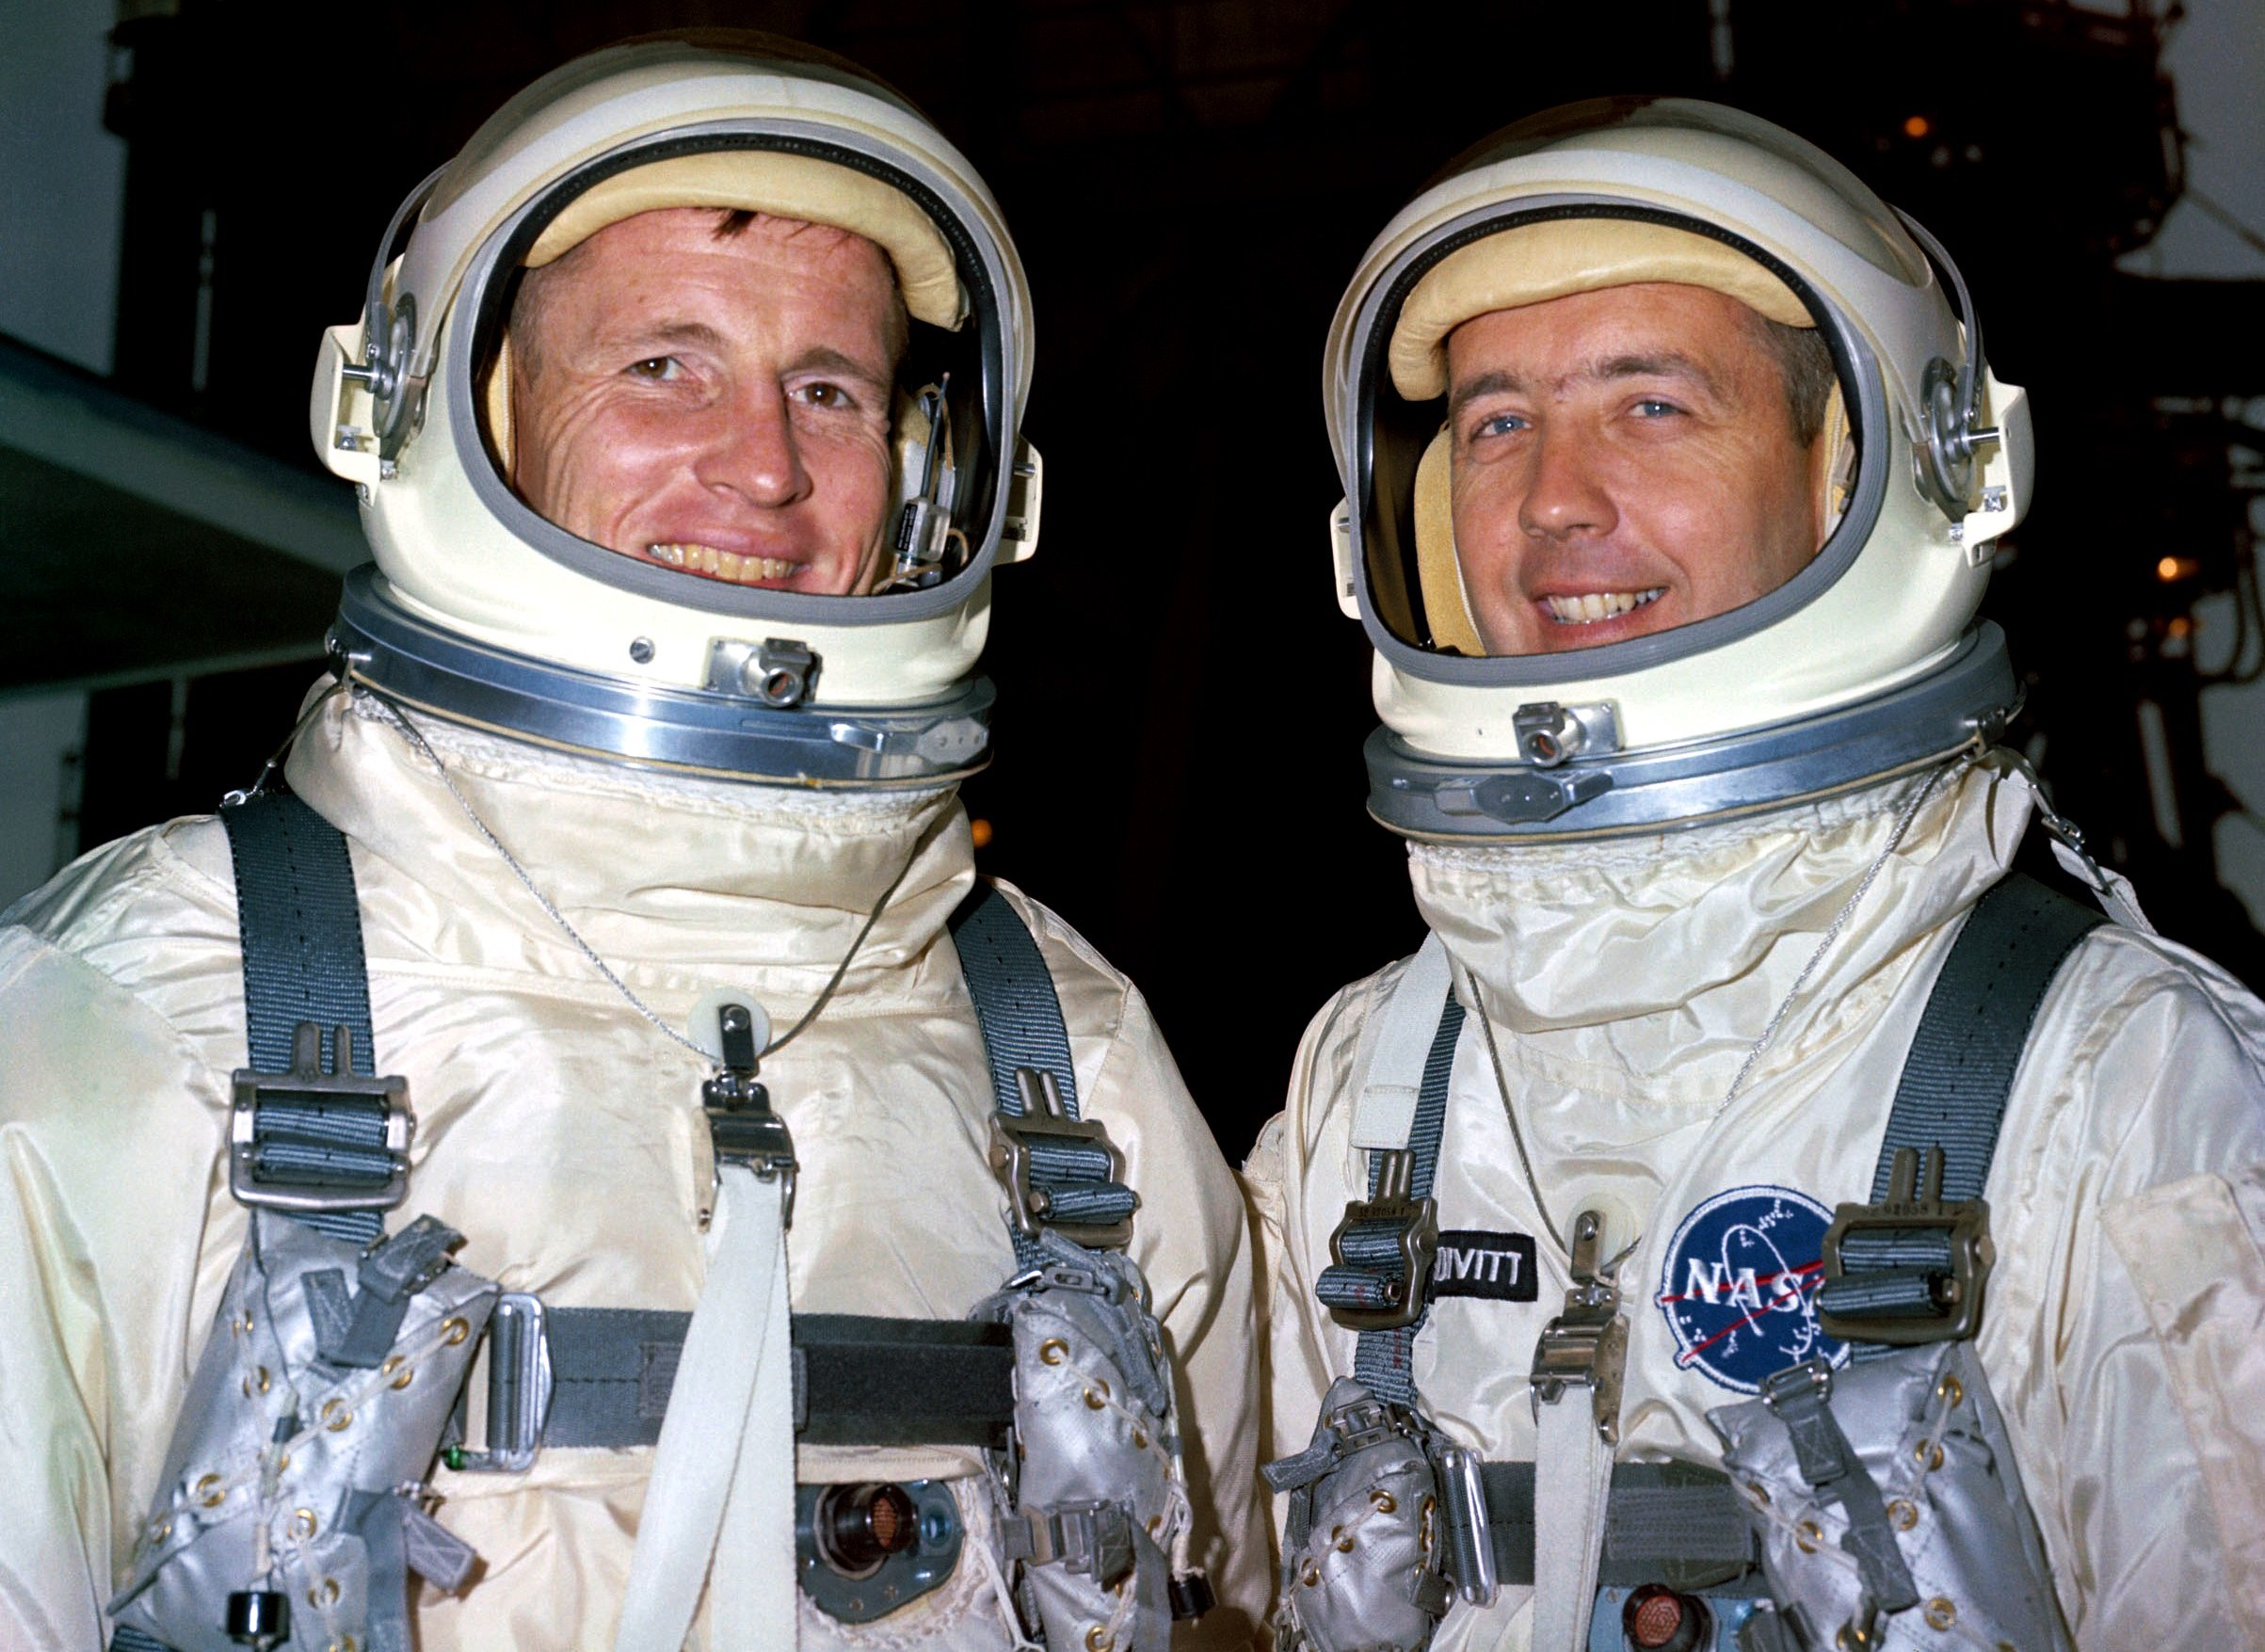 Gemini IV Astronauts at the Launch Pad | NASA